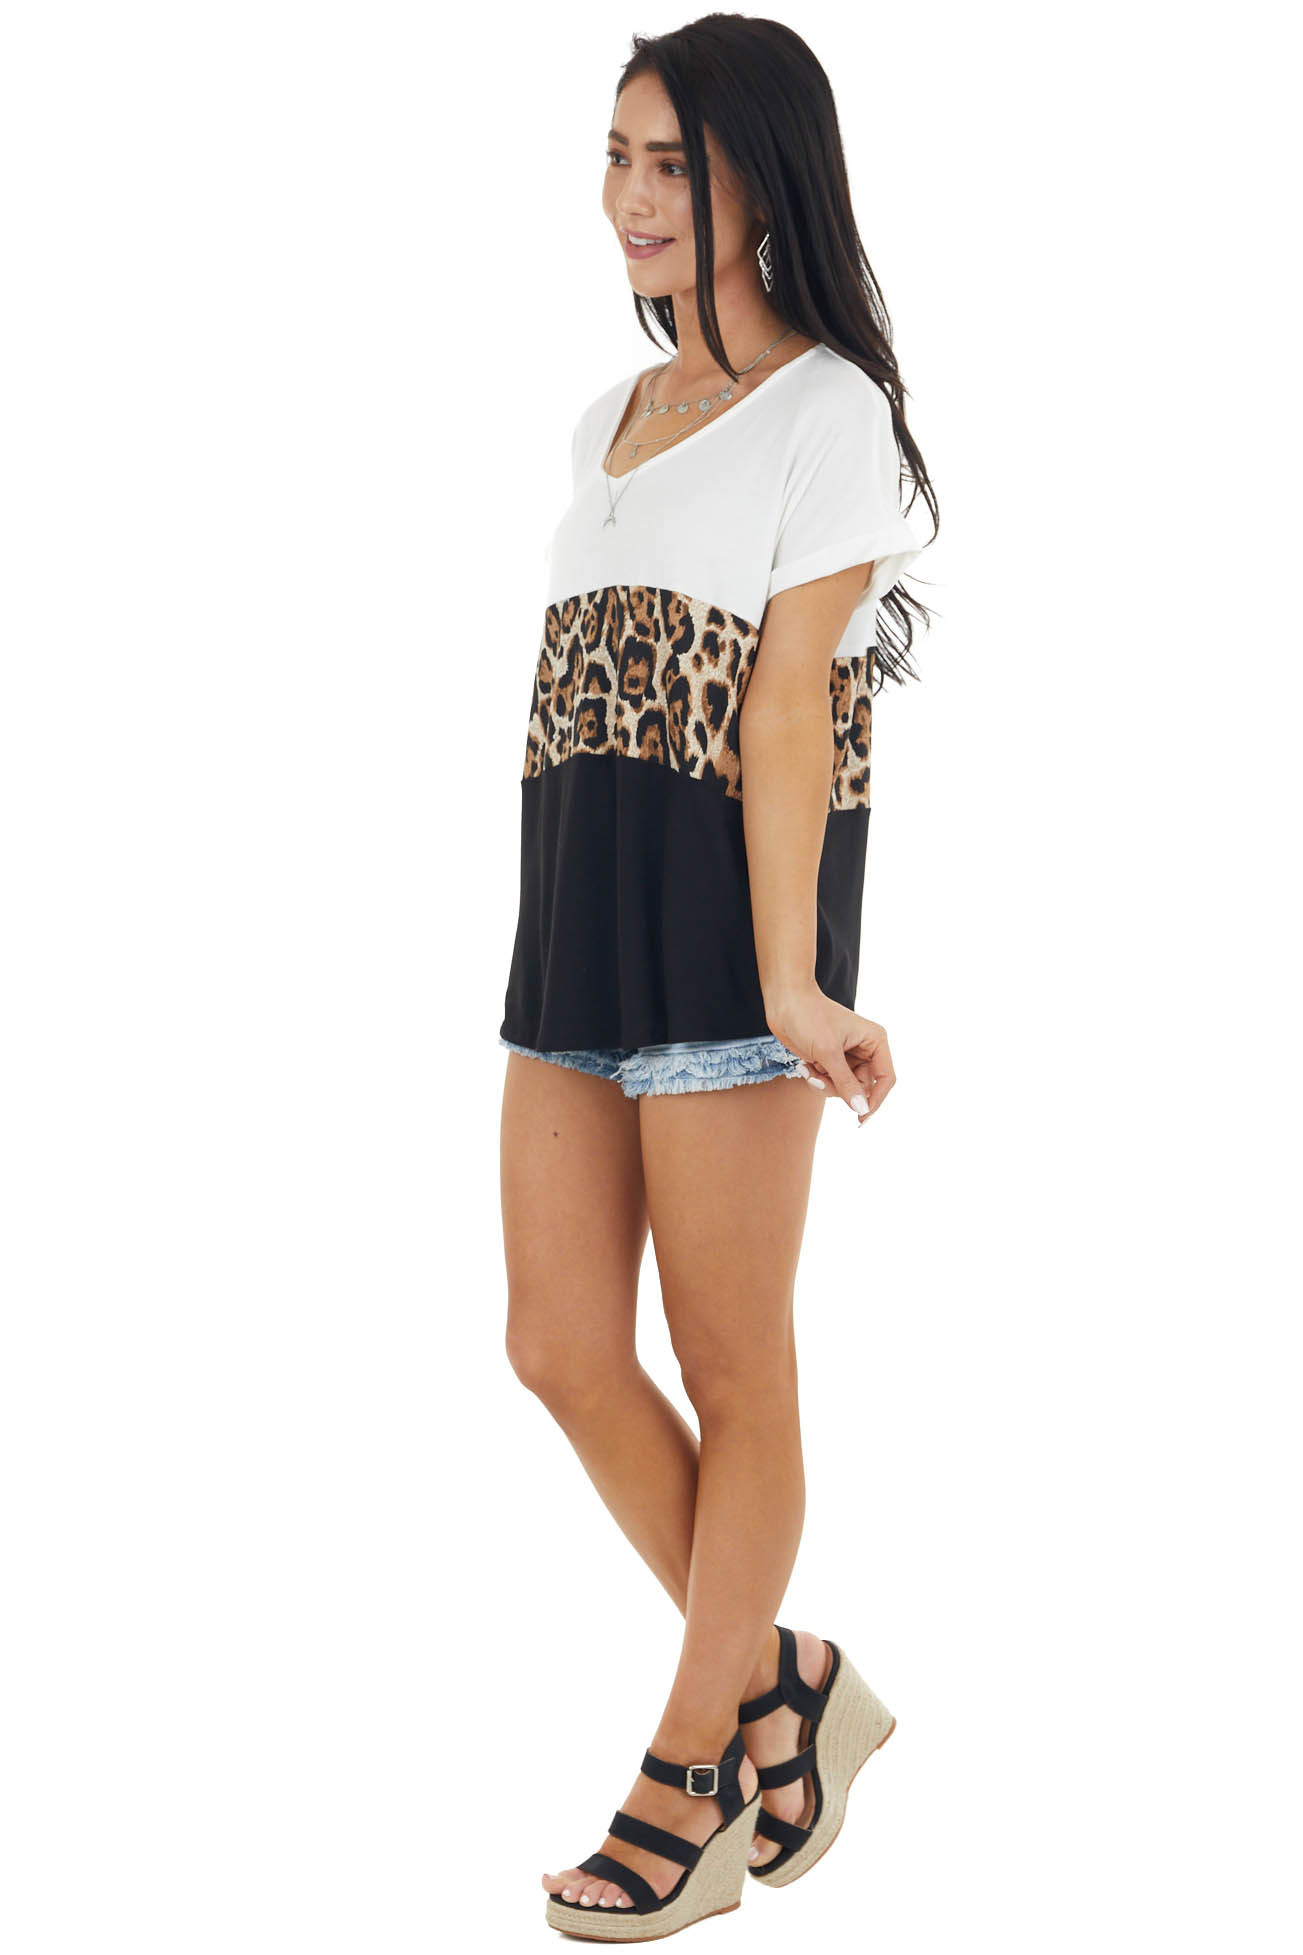 Ivory and Black Leopard Print Colorblock Short Sleeve Top